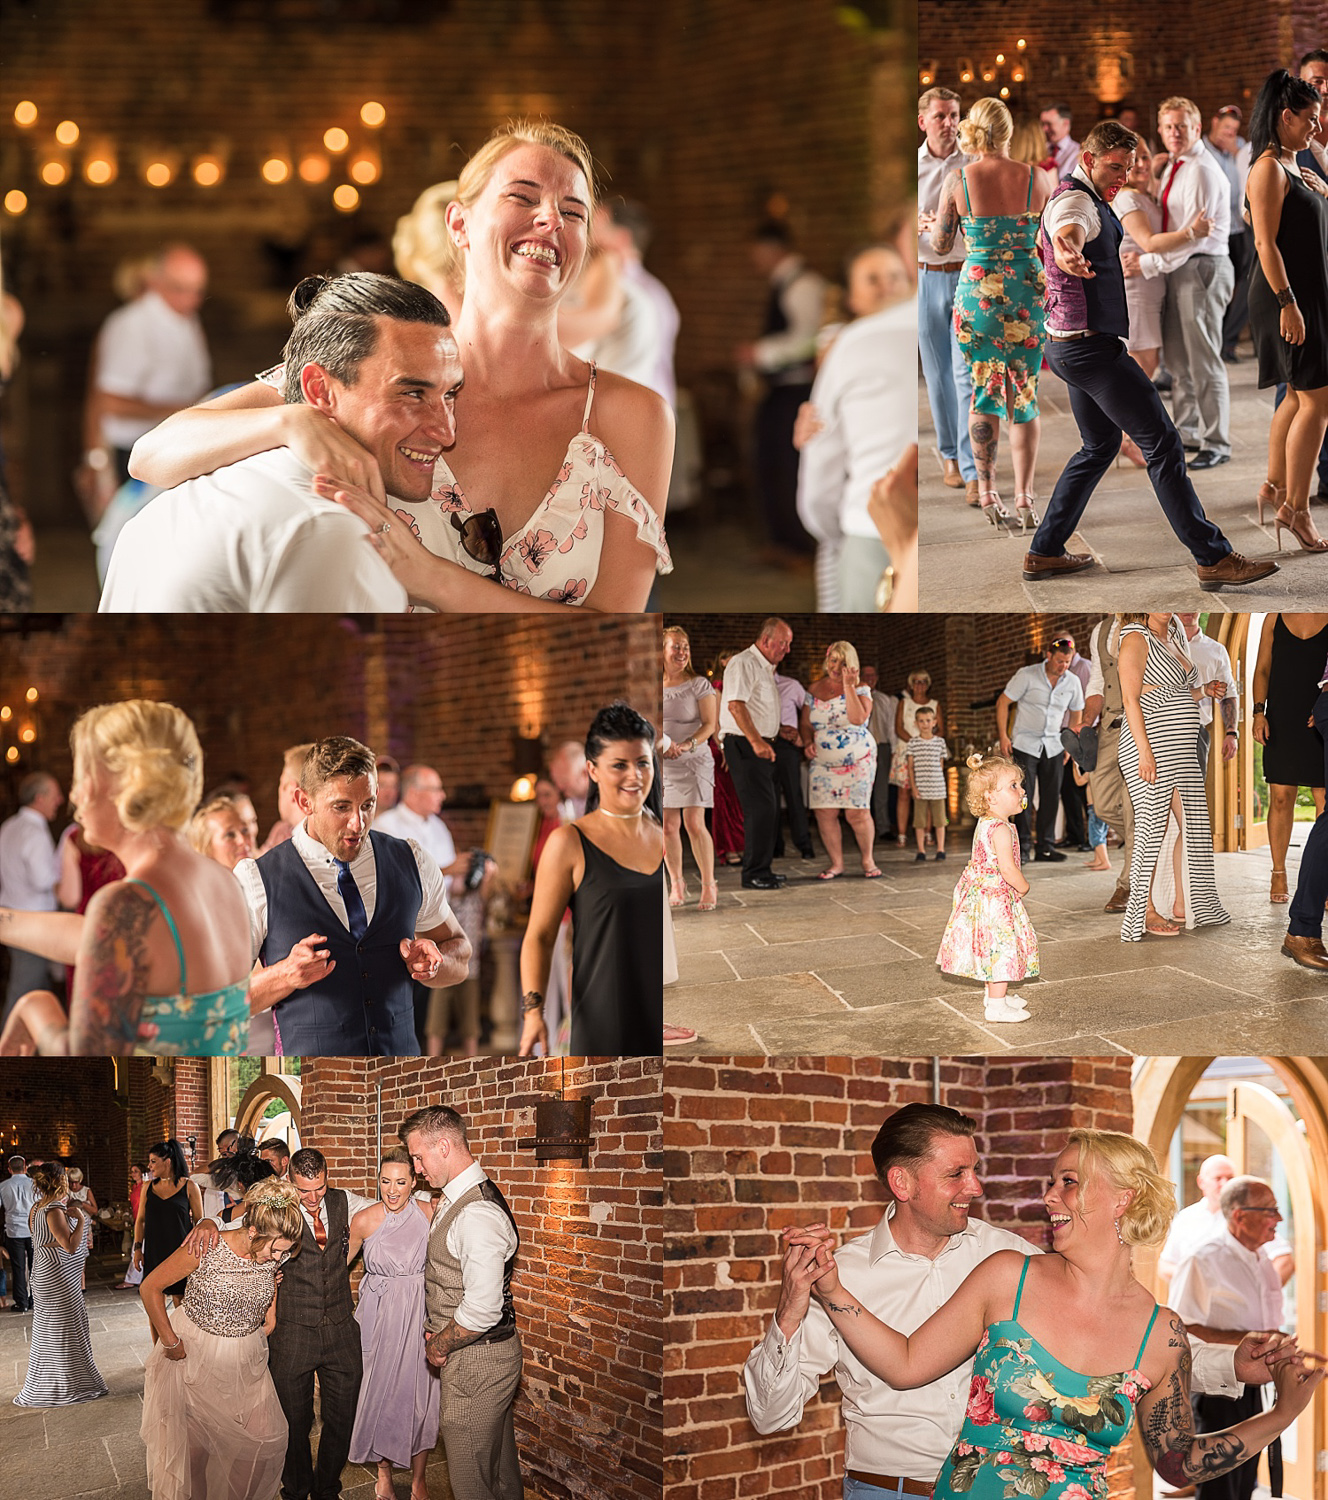 great captured images of wedding guests dancing